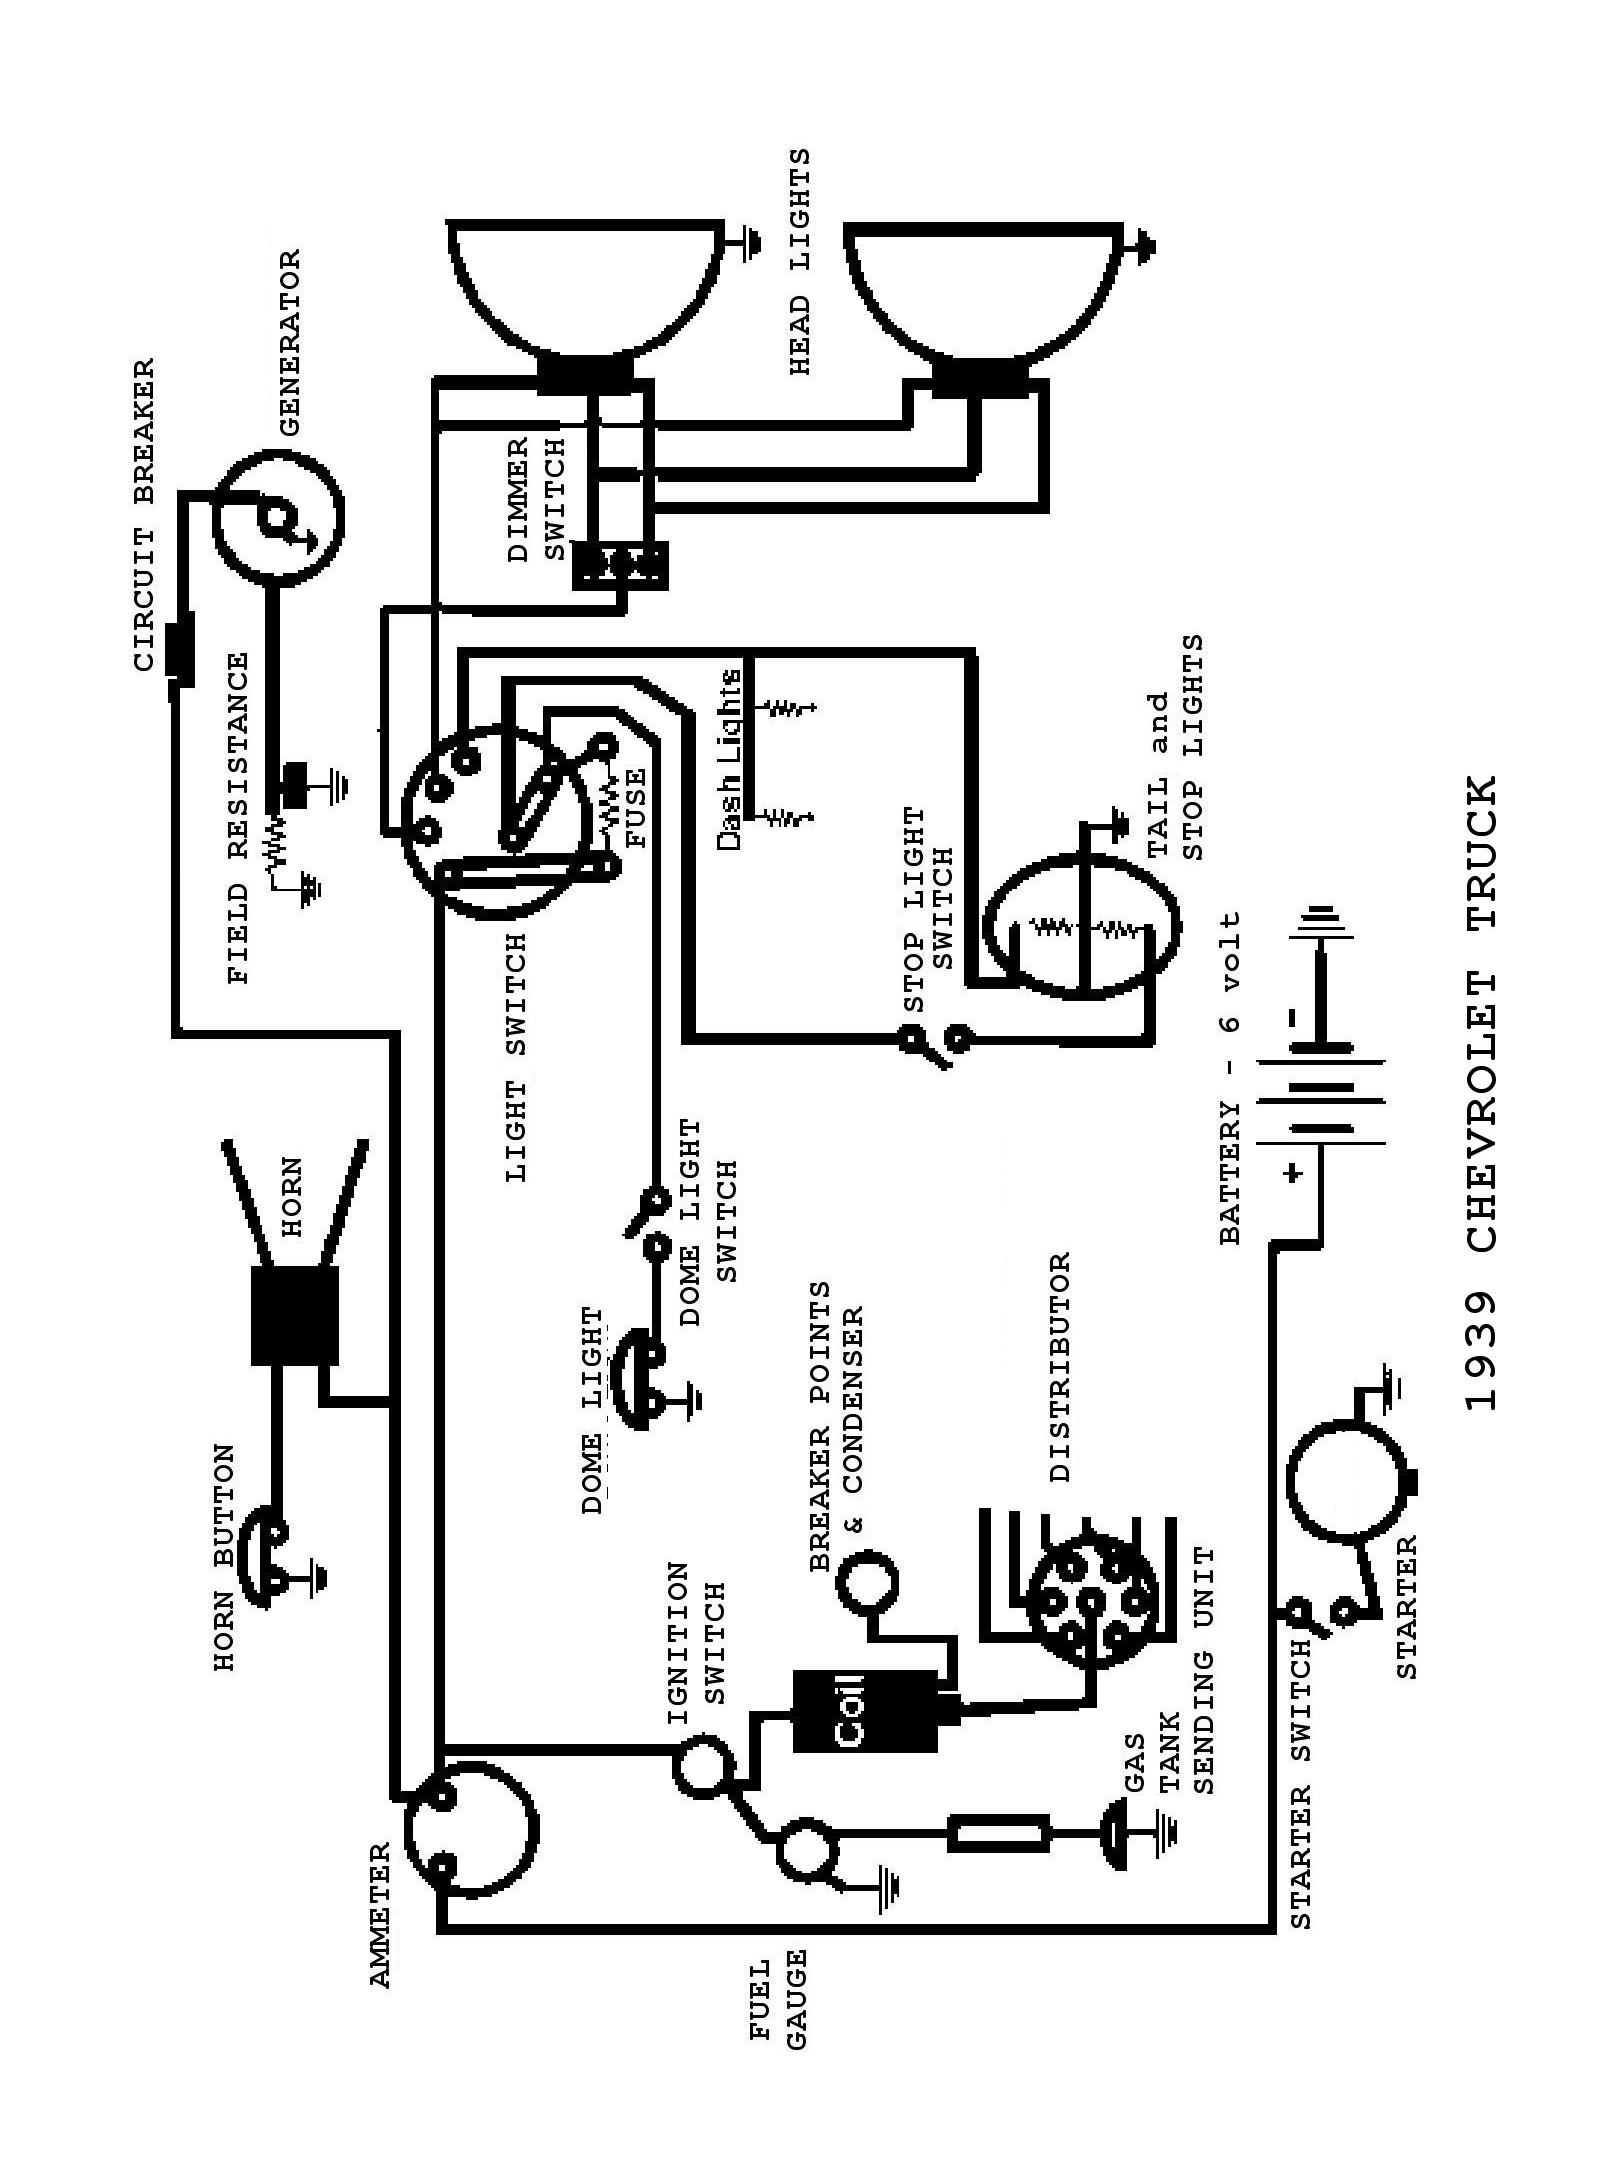 39truck ihc truck wiring diagrams mazda truck wiring diagrams \u2022 free 1979 Corvette Fuse Box Diagram at virtualis.co